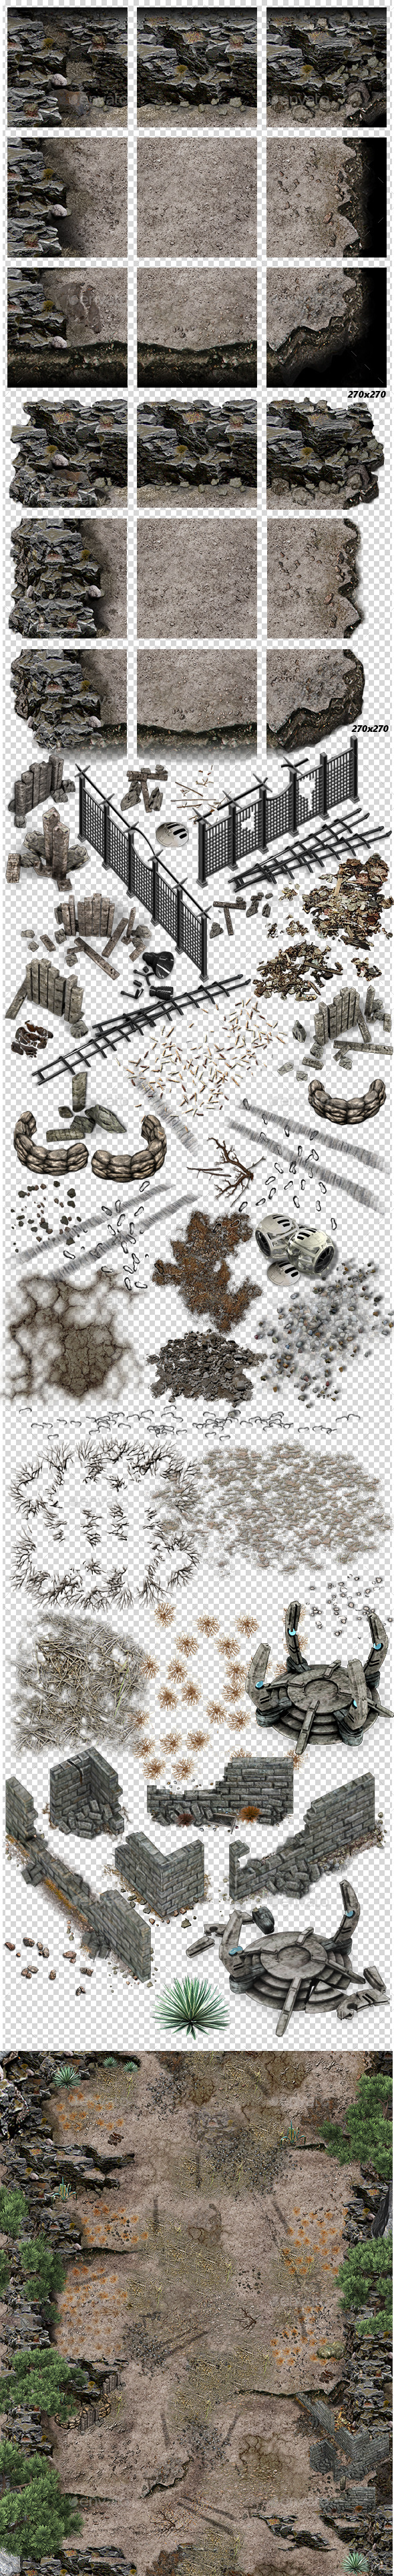 GraphicRiver Dust Tiles and Decals 11064854